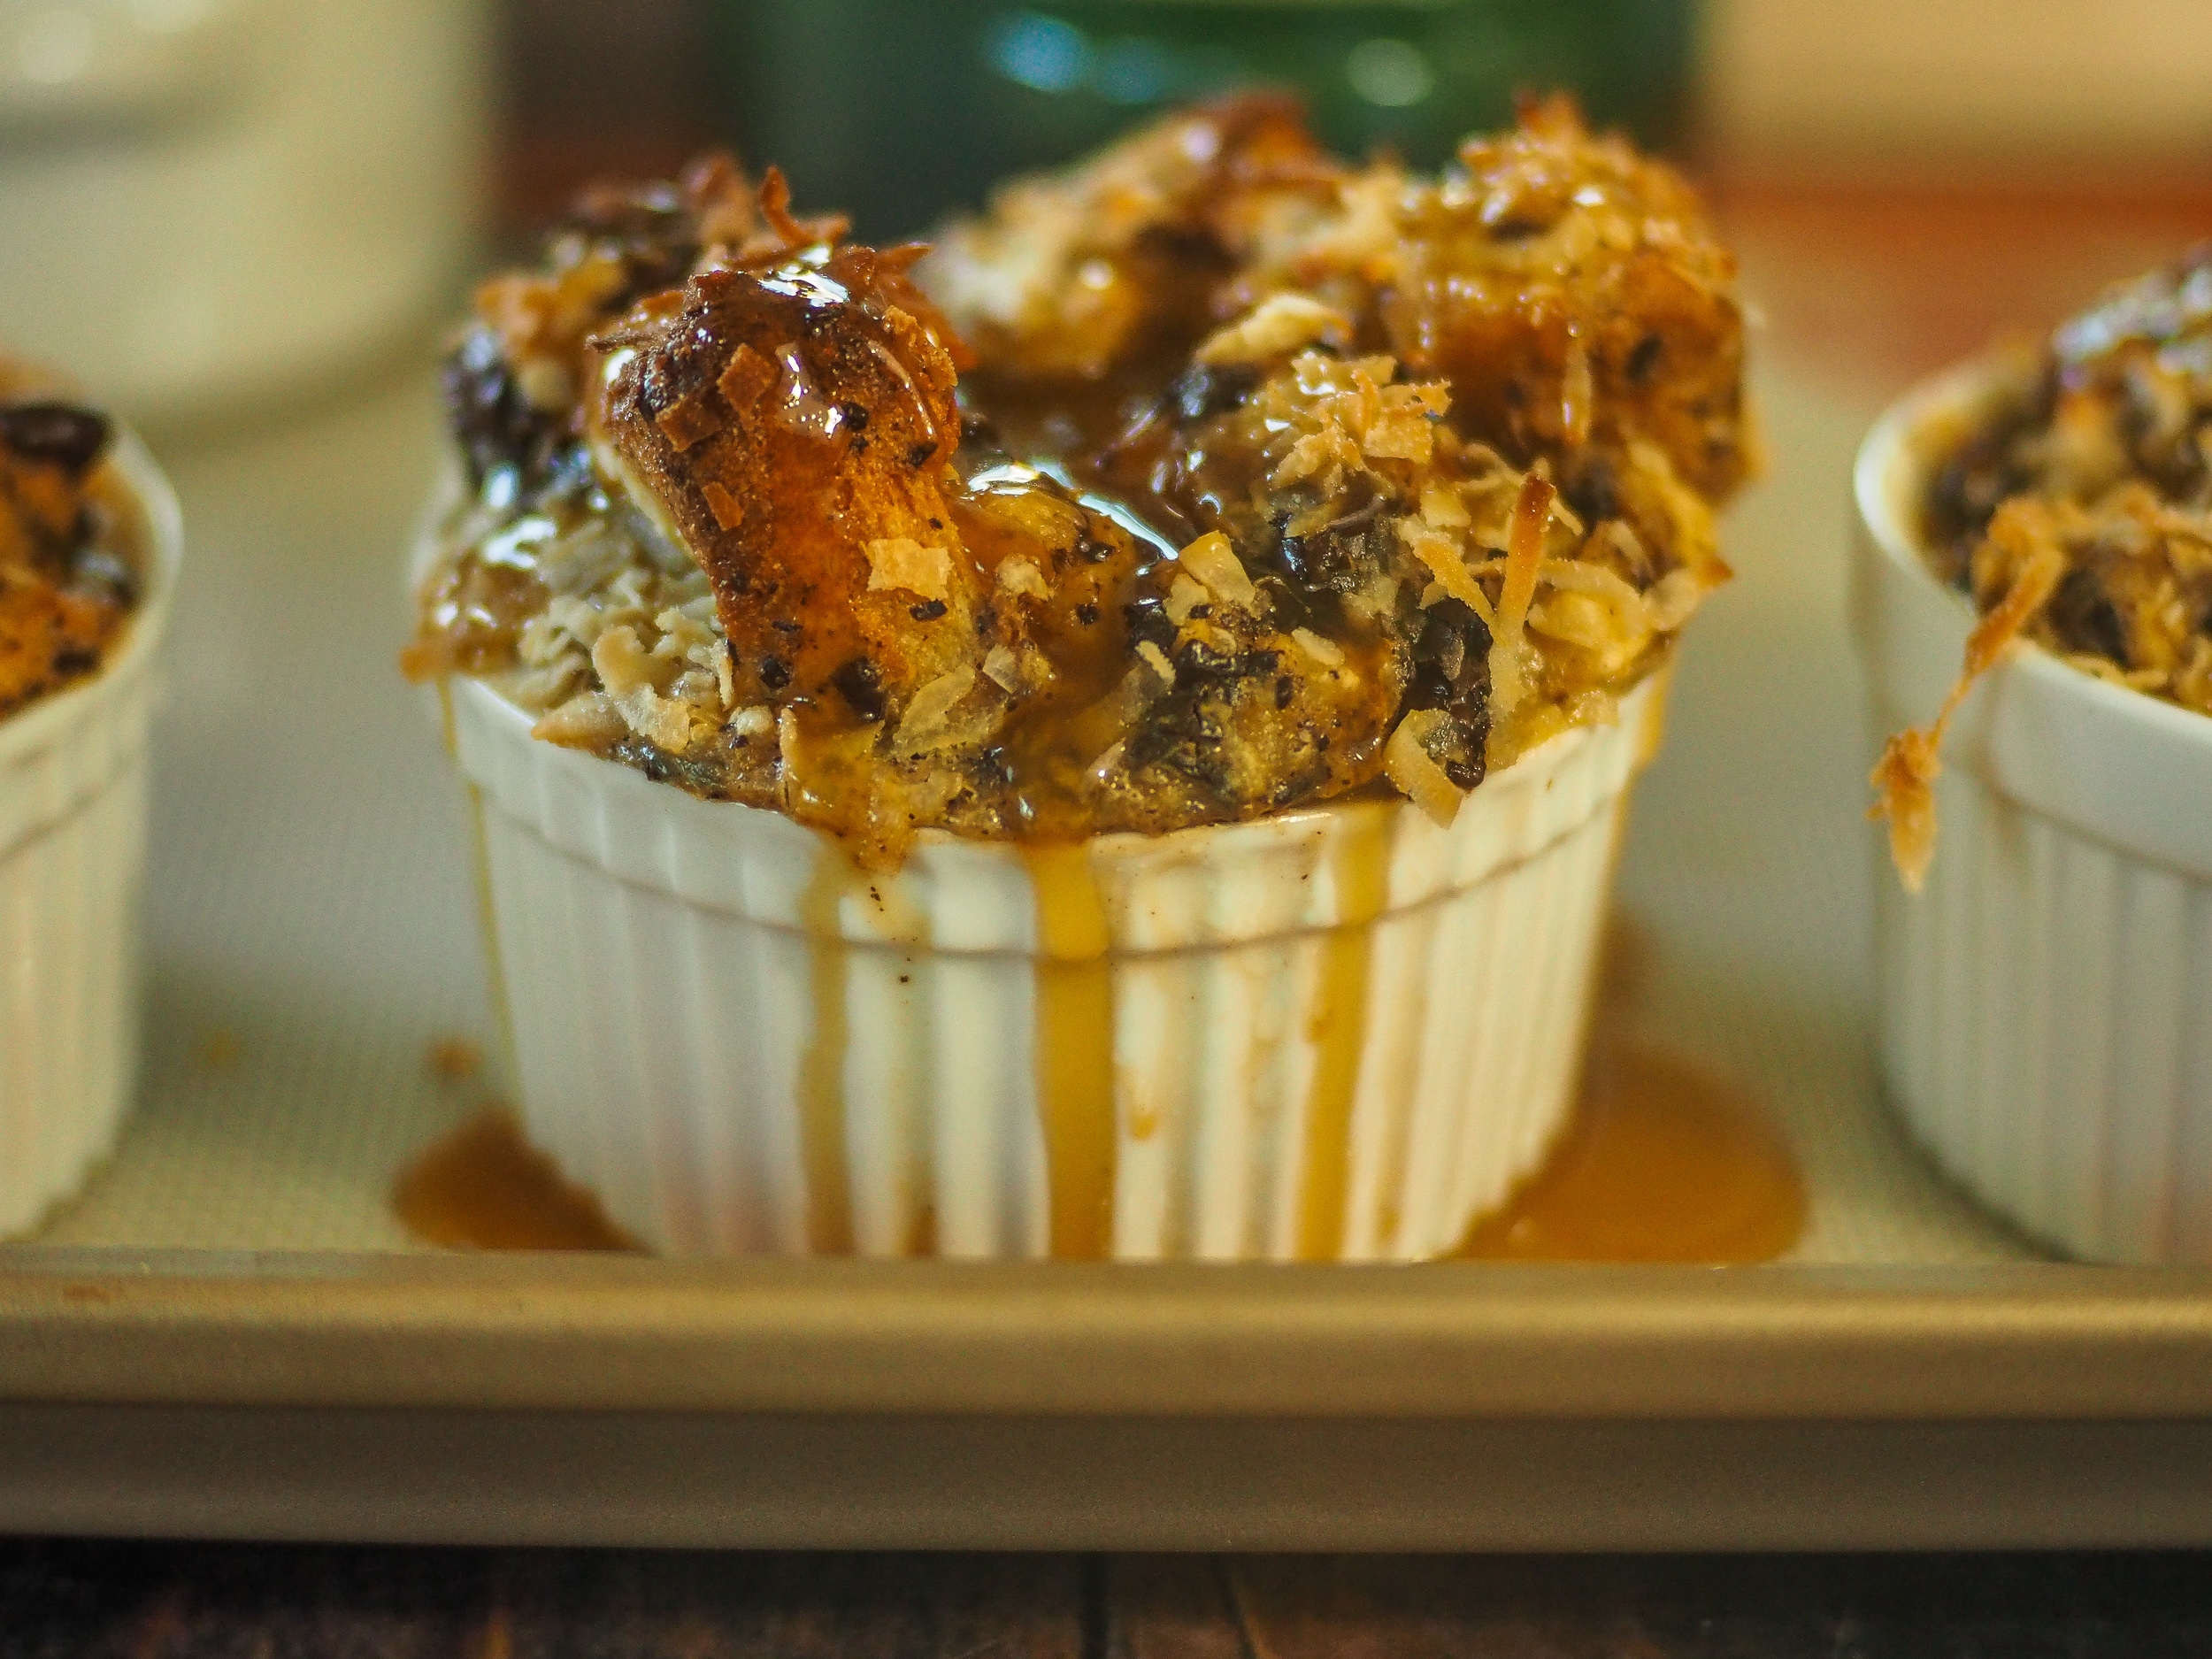 Coconut-Banana-Chocolate Bread Pudding